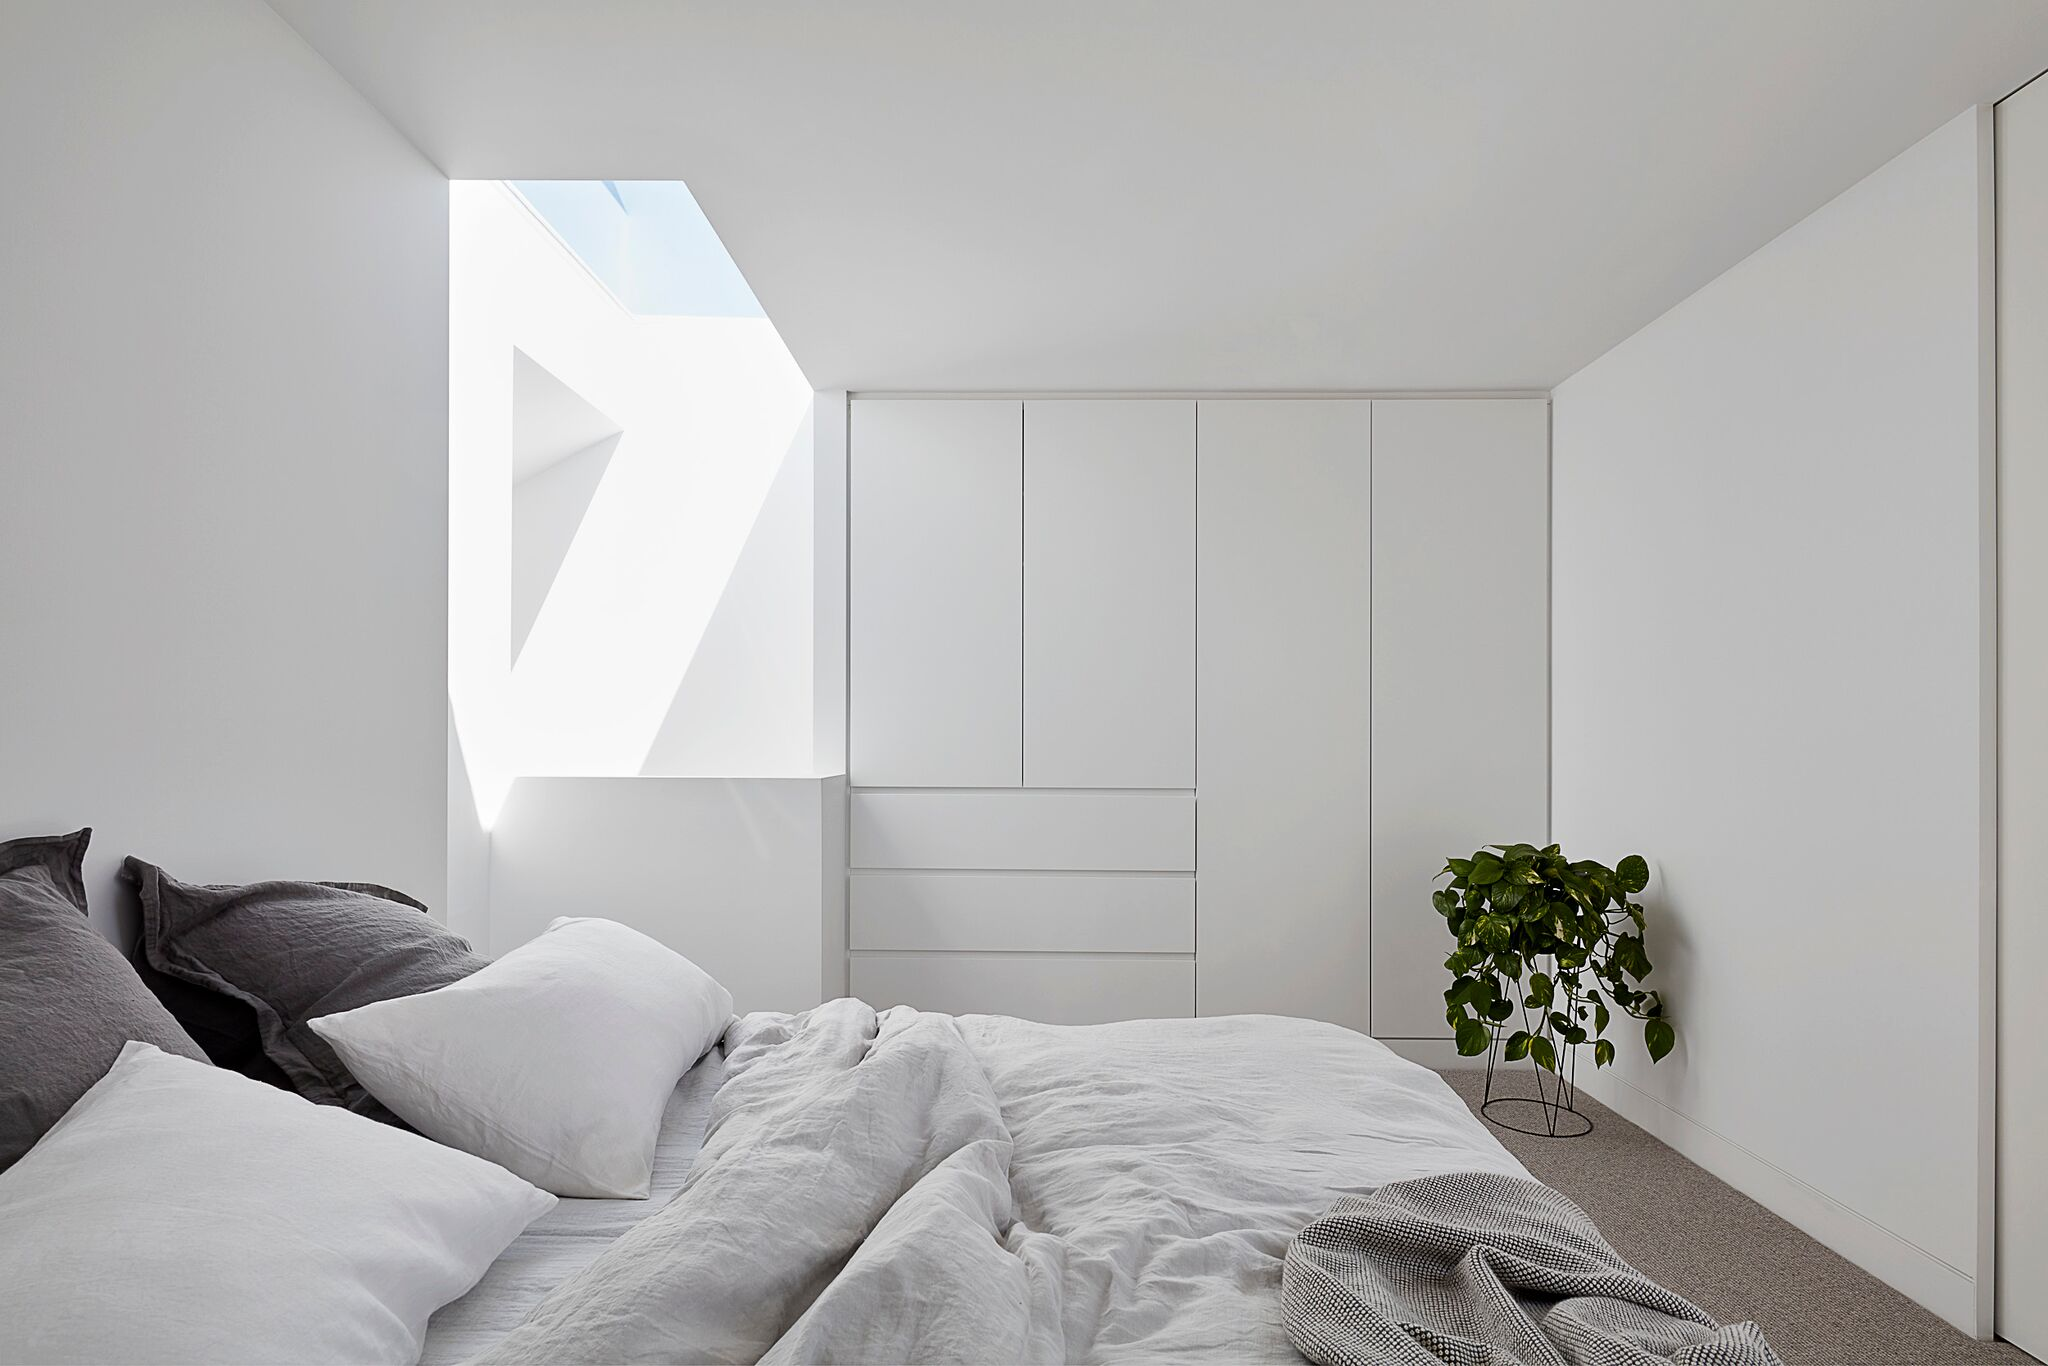 Gallery Of Oban Street By Mittelman Amsellem Architects Local Australian Design & Interiors South Yarra, Melbourne Image 11